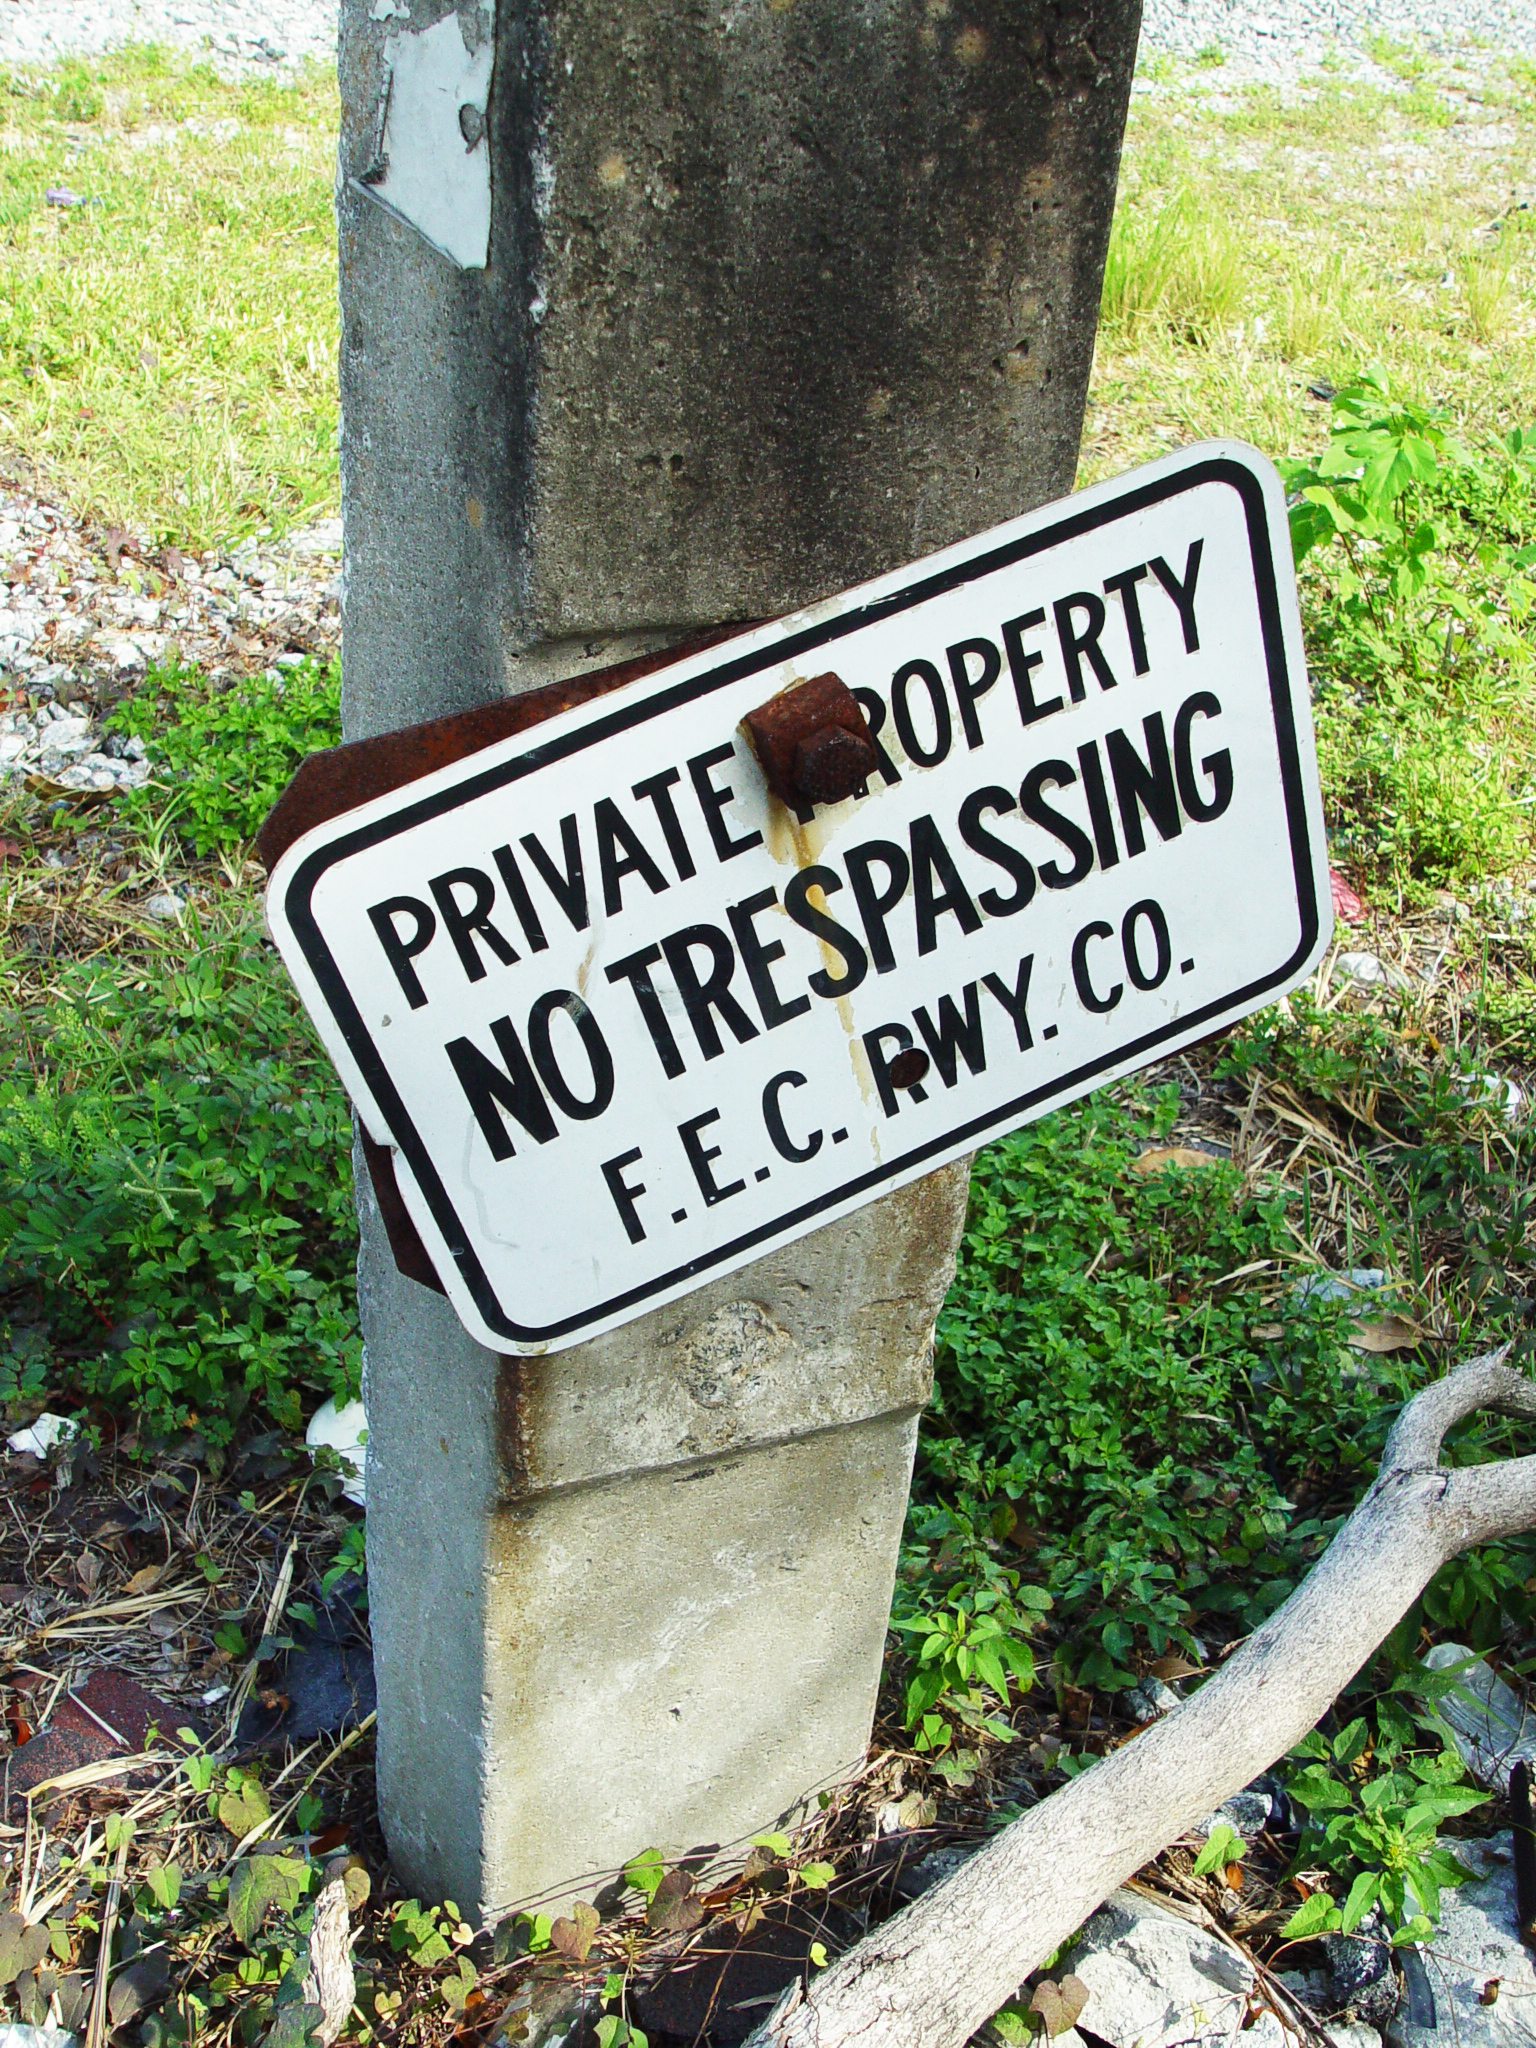 WHAT TO EXPECT FROM PROPERTY MANAGERS